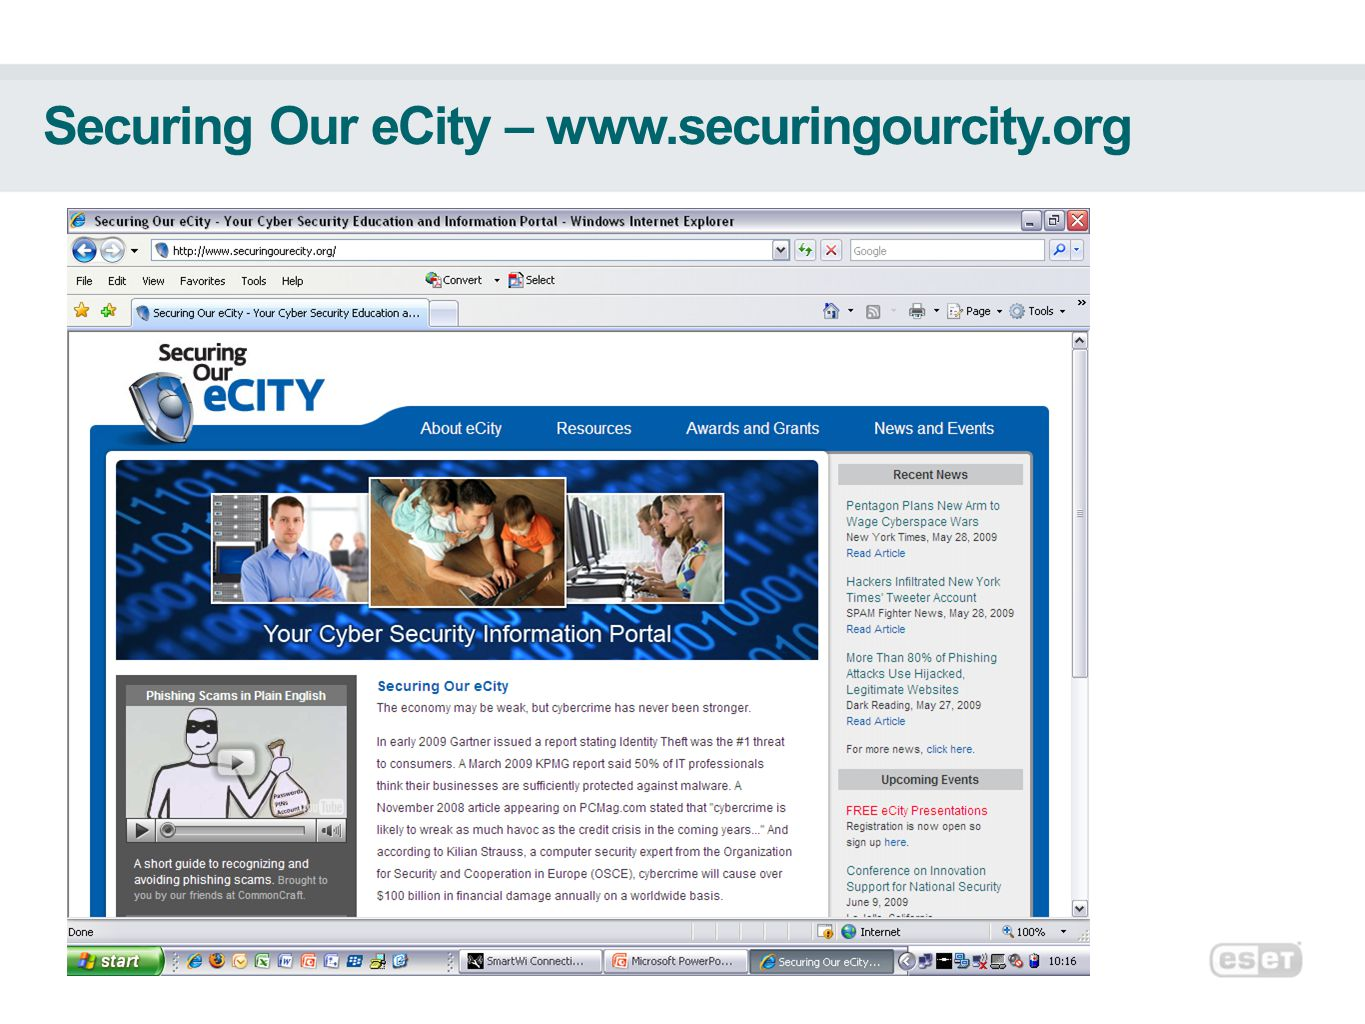 Securing Our eCity – www.securingourcity.org